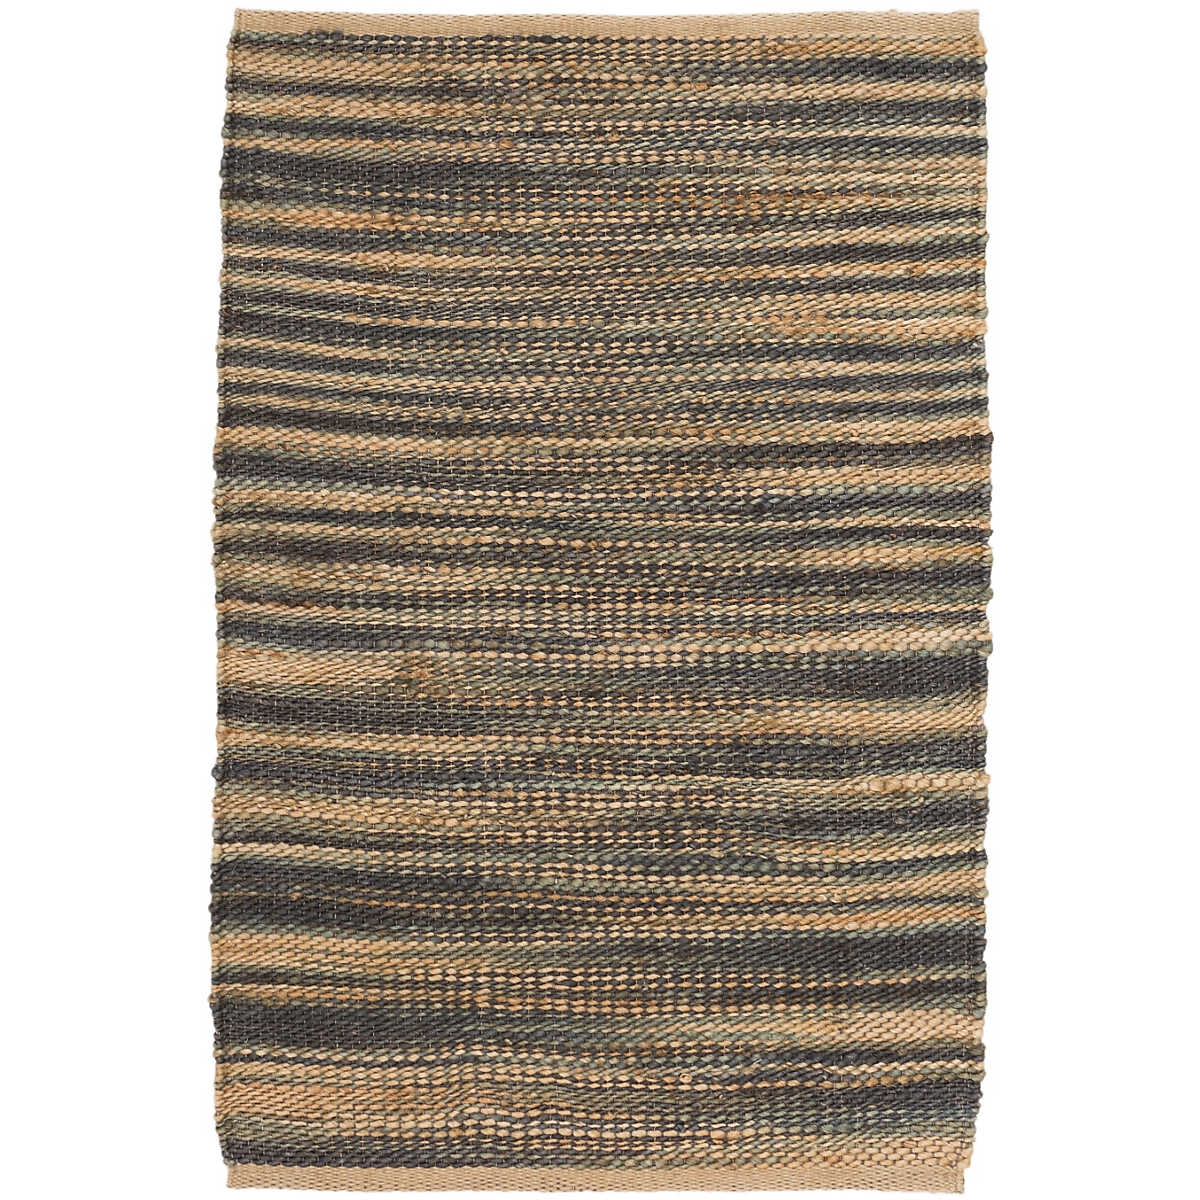 Wonderful Haze Denim Jute Woven Rug